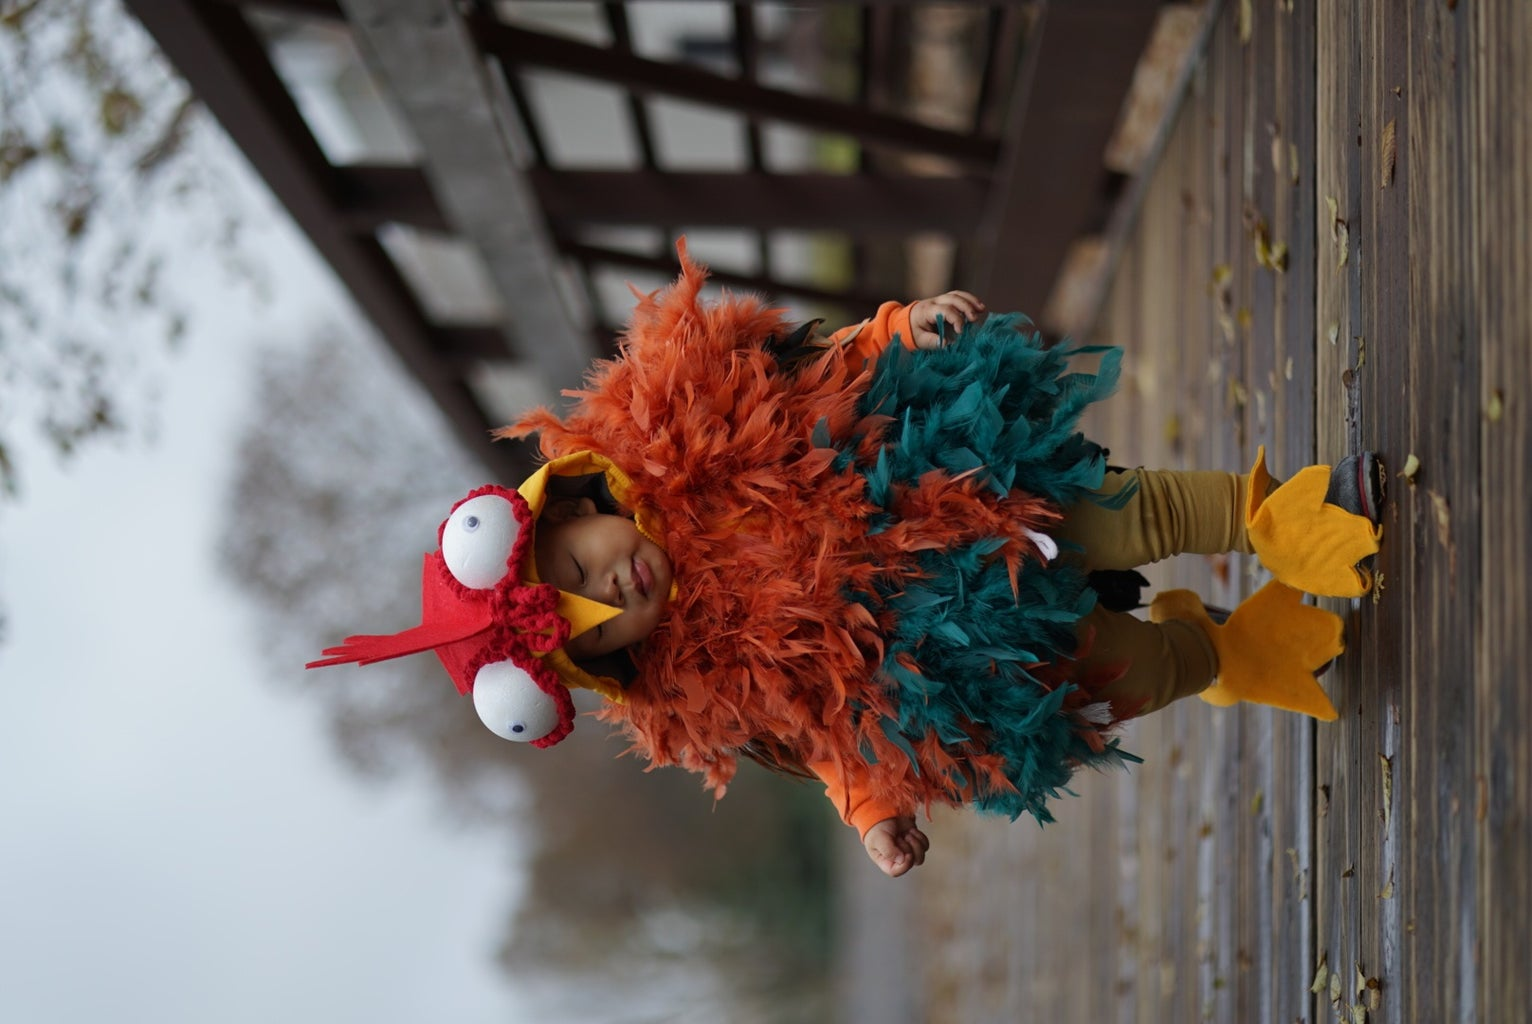 How to Make a Rooster Costume